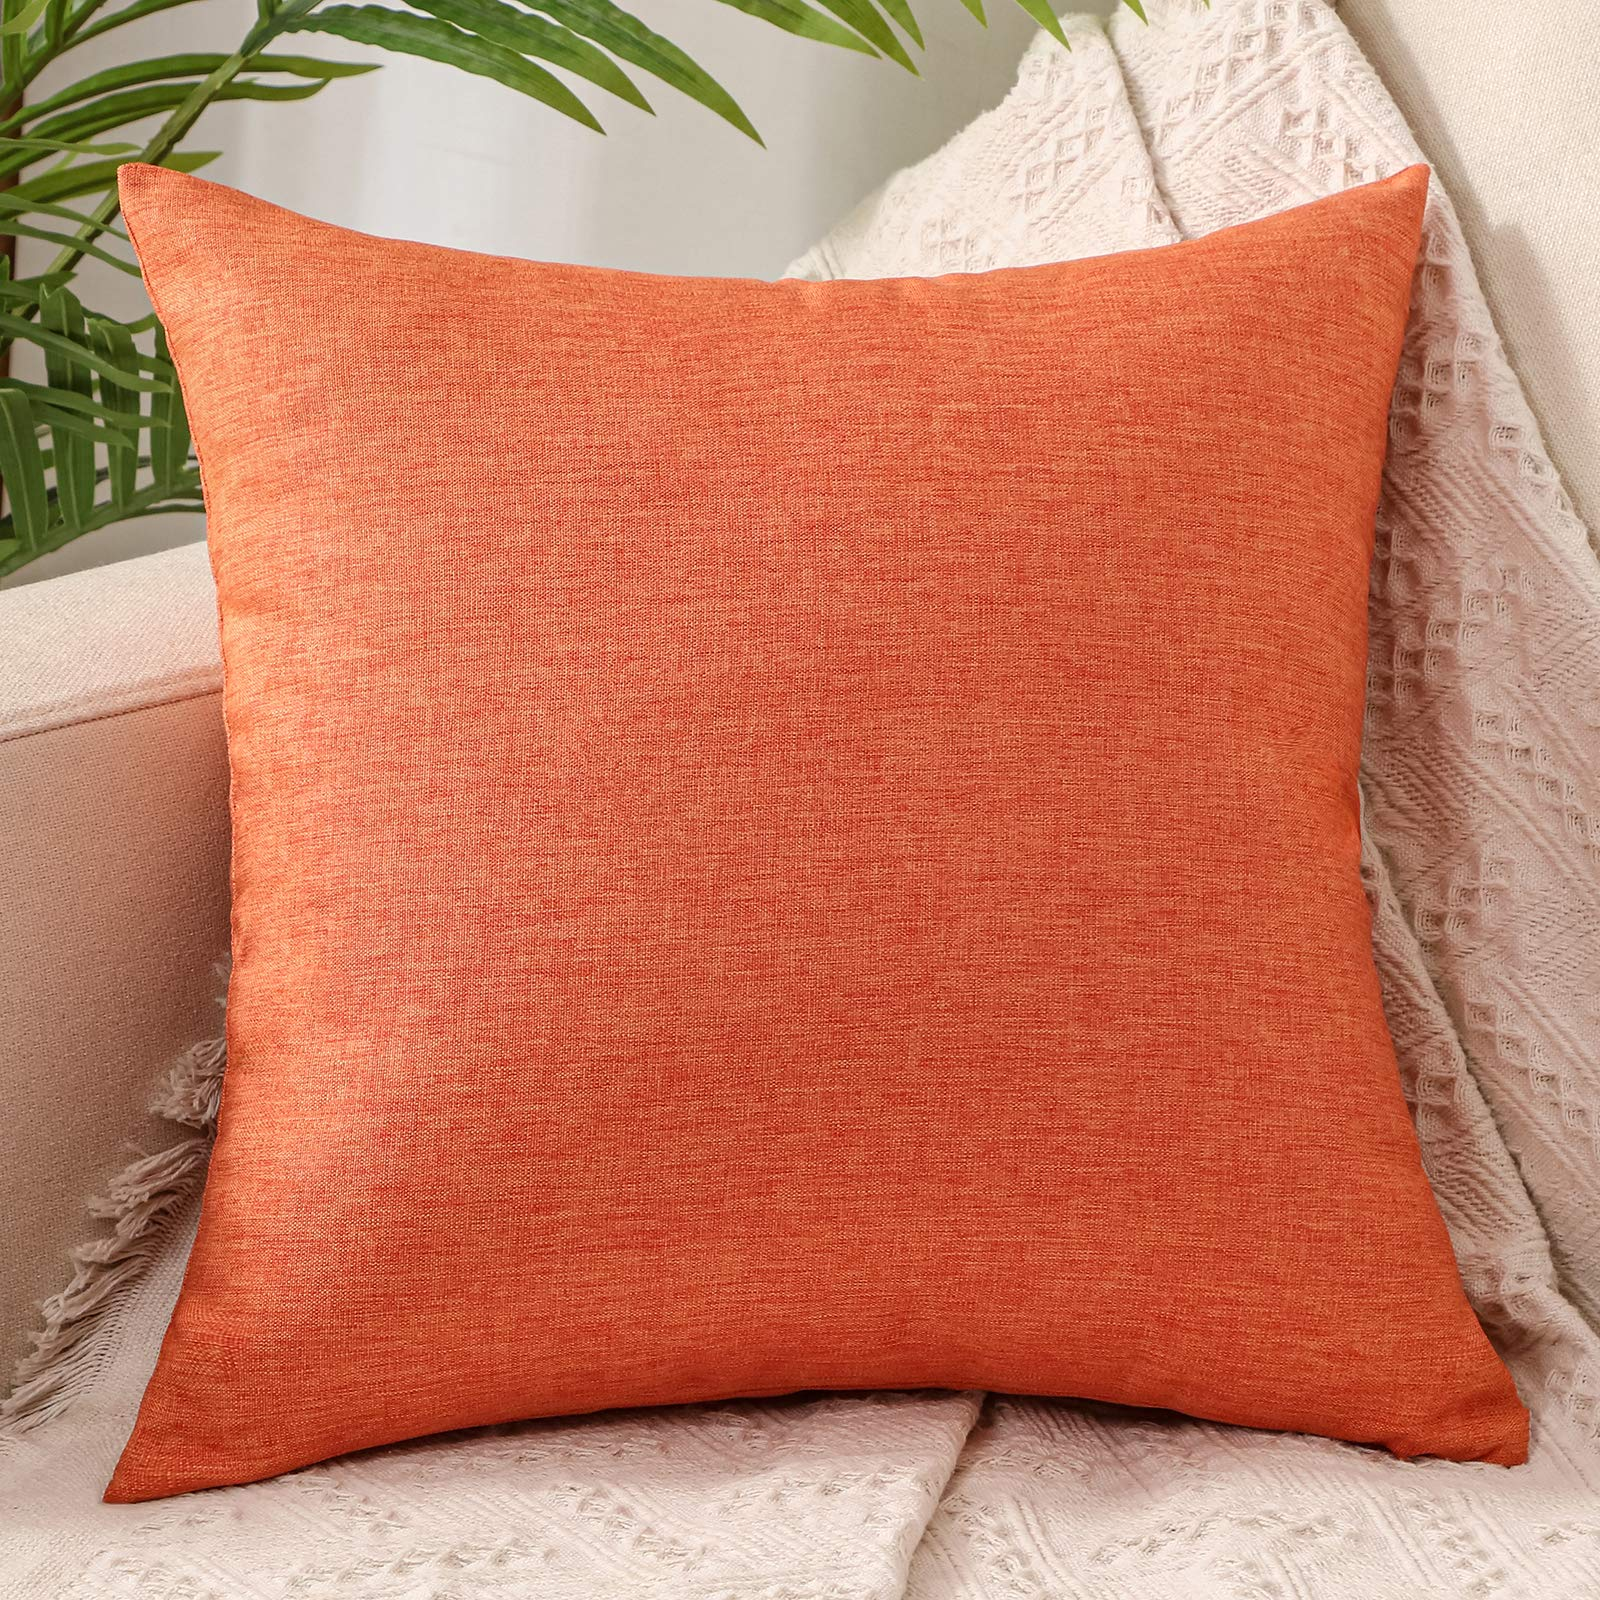 ZebraSmile Soft No Pilling Solid Decorative Square Throw Pillow Covers Cushion Case for Sofa Bedroom Car Rest and Decoration 18 x 18 Inch, Carrot Orange